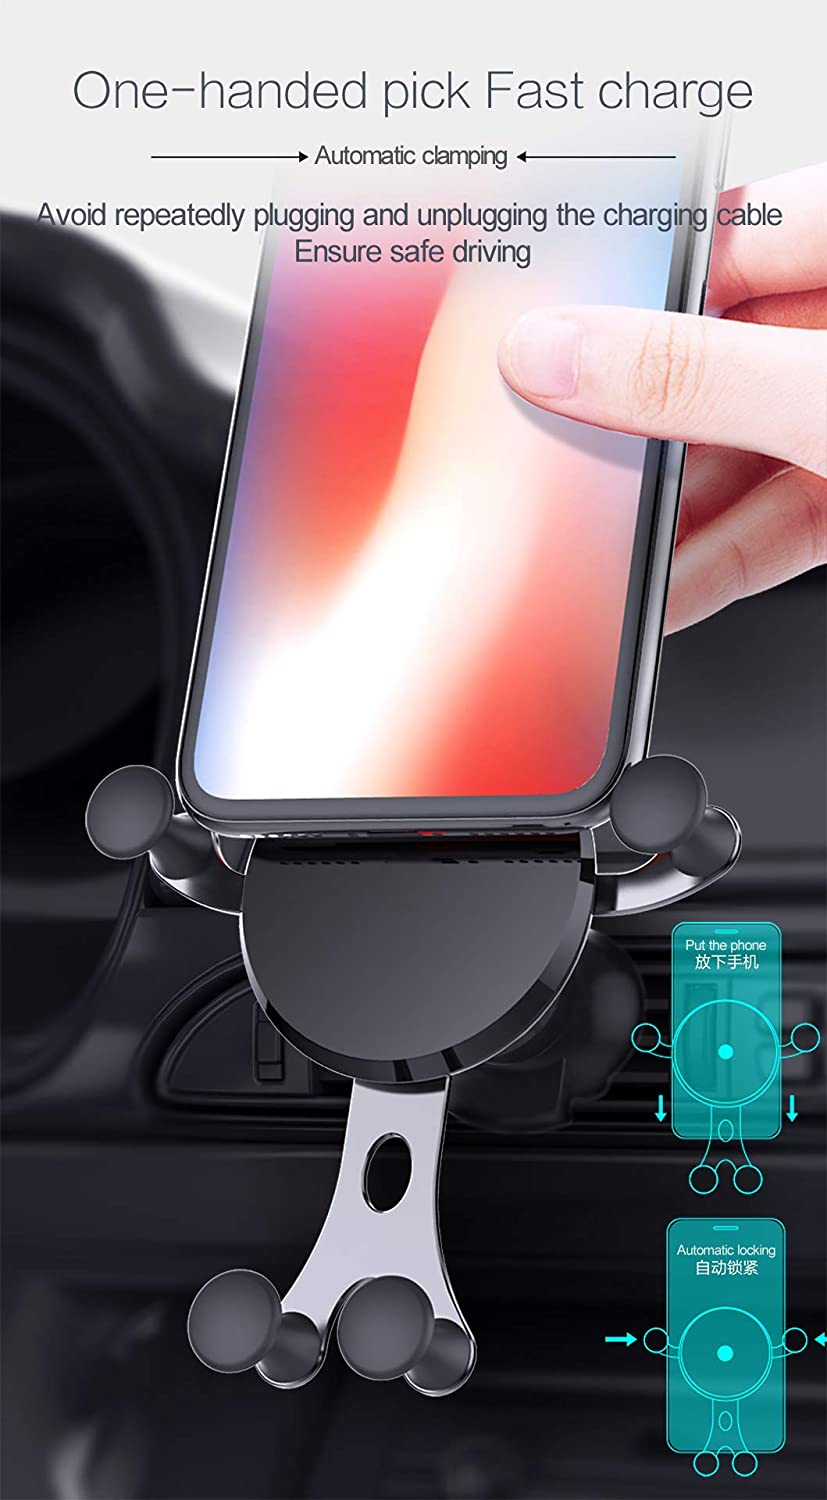 10 W Fast Charger QI Wireless Car Charger Air Vent Phone Holder Wireless Charger for Samsung Galaxy S9//S9+//S8//S8+//Note 8 Car Phone Mount Wireless Charger 7.5 W iPhone Xs Max//Xs//XR//X// 8//8 Plus Shenzehen Desire Technology